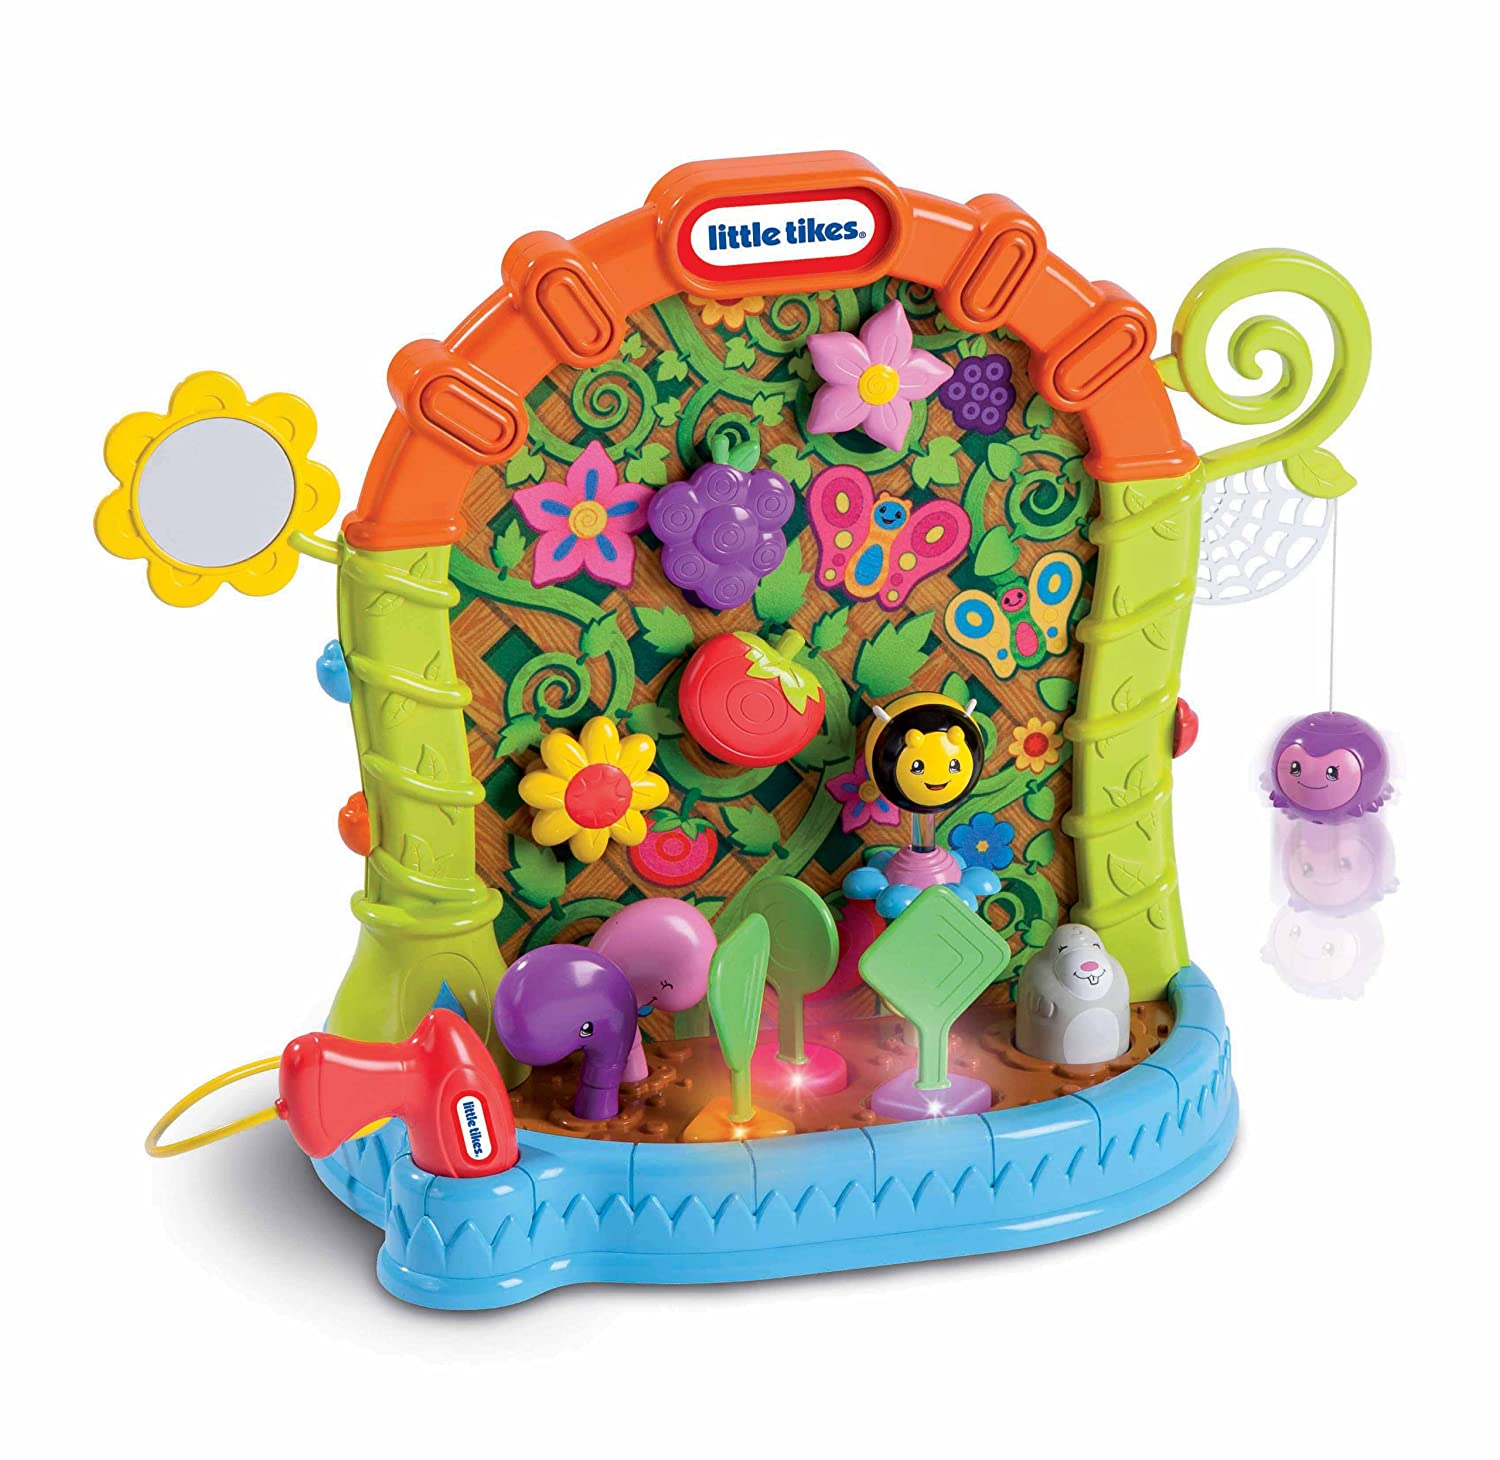 An Image of Little Tikes Activity Garden Plant 'n Play